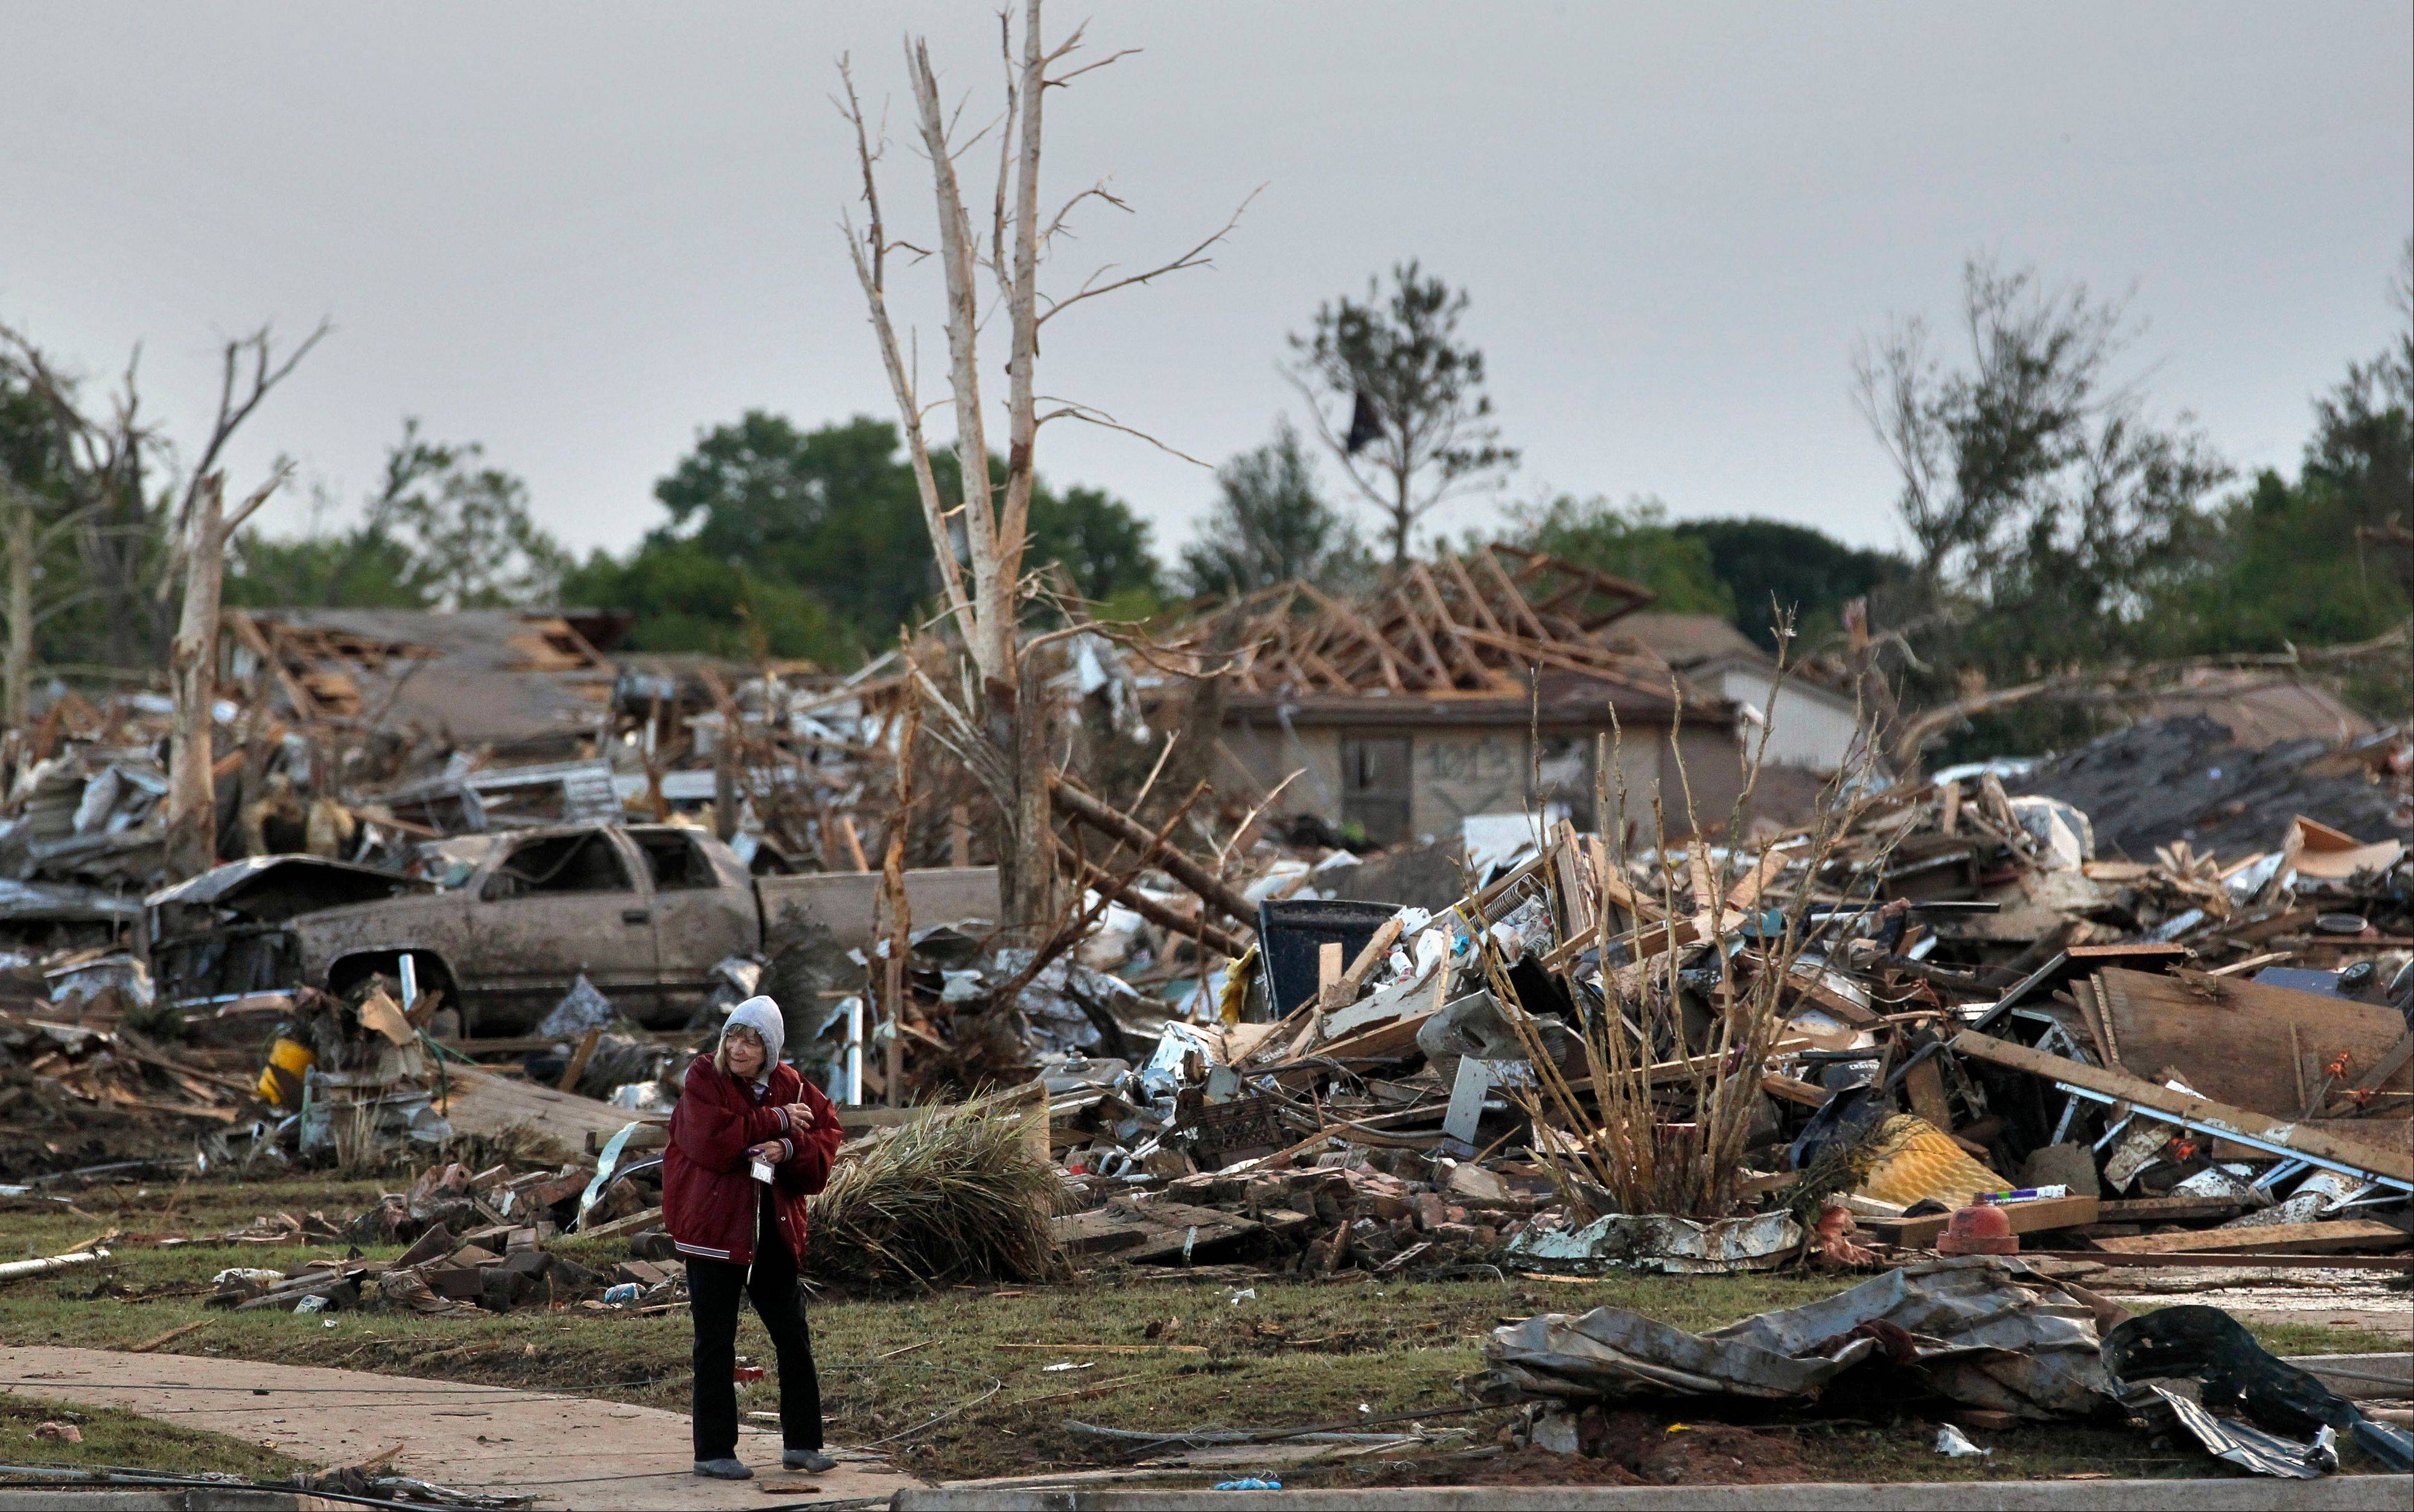 A local resident allowed by security officers into an otherwise sealed off neighborhood walks past the rubble of destroyed homes, one day after a tornado moved through Moore, Okla., Tuesday, May 21, 2013. The huge tornado roared through the Oklahoma City suburb Monday, flattening entire neighborhoods and destroying an elementary school with a direct blow as children and teachers huddled against winds up to 200 mph.